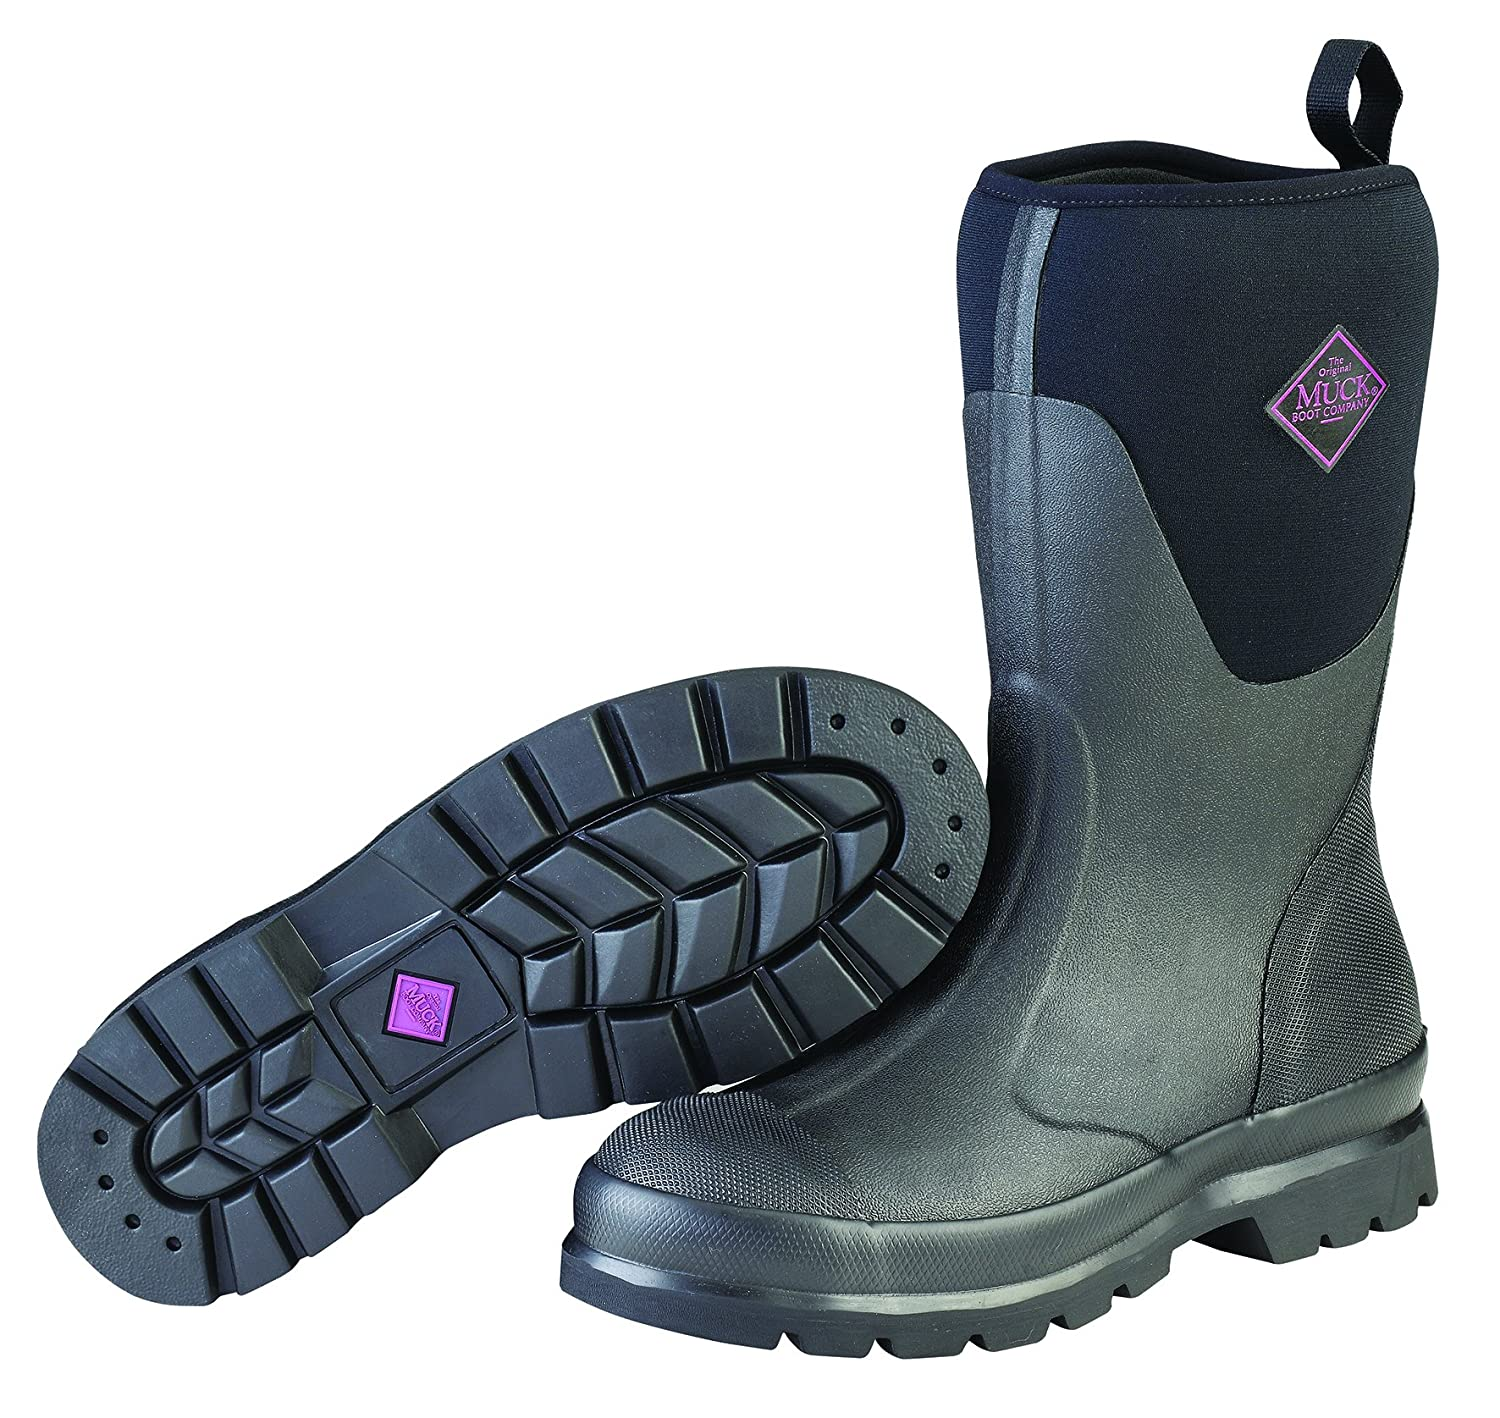 Muck Boot Women's Chore Mid Snow B06VWPV94G 6 B(M) US|Black